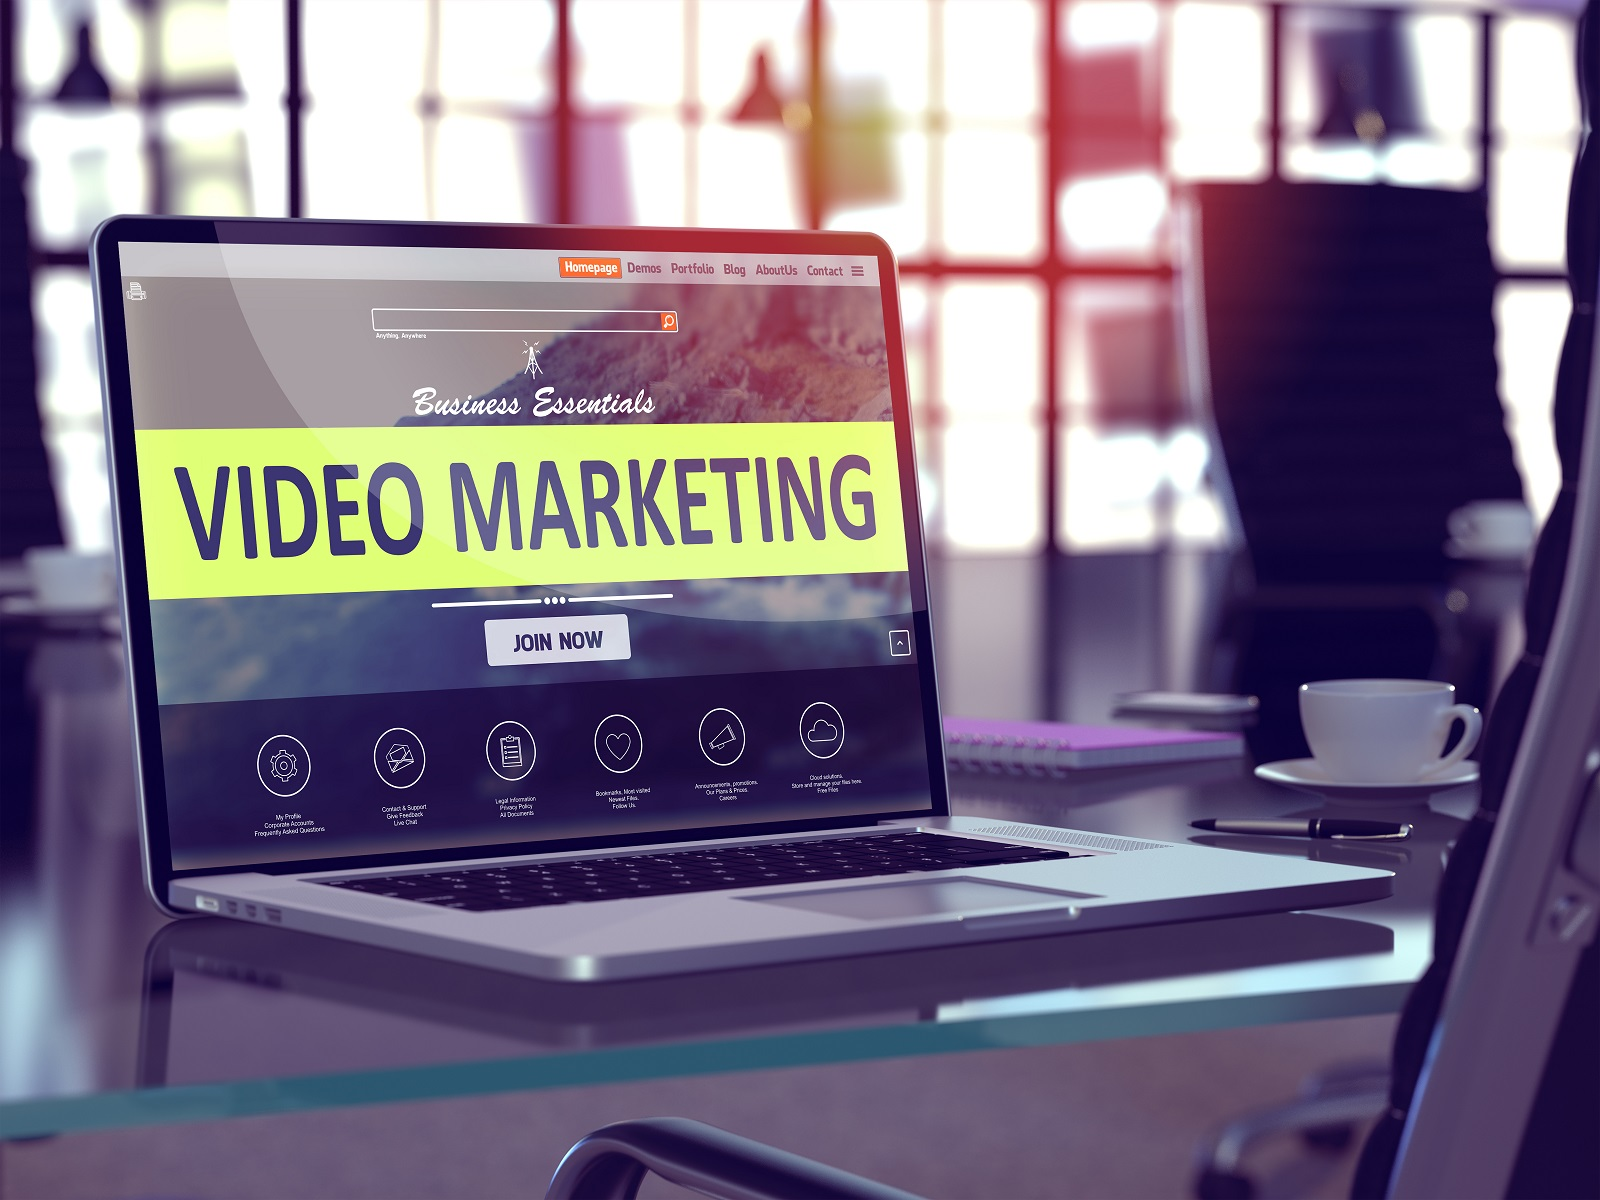 Los videos como estrategias de marketing